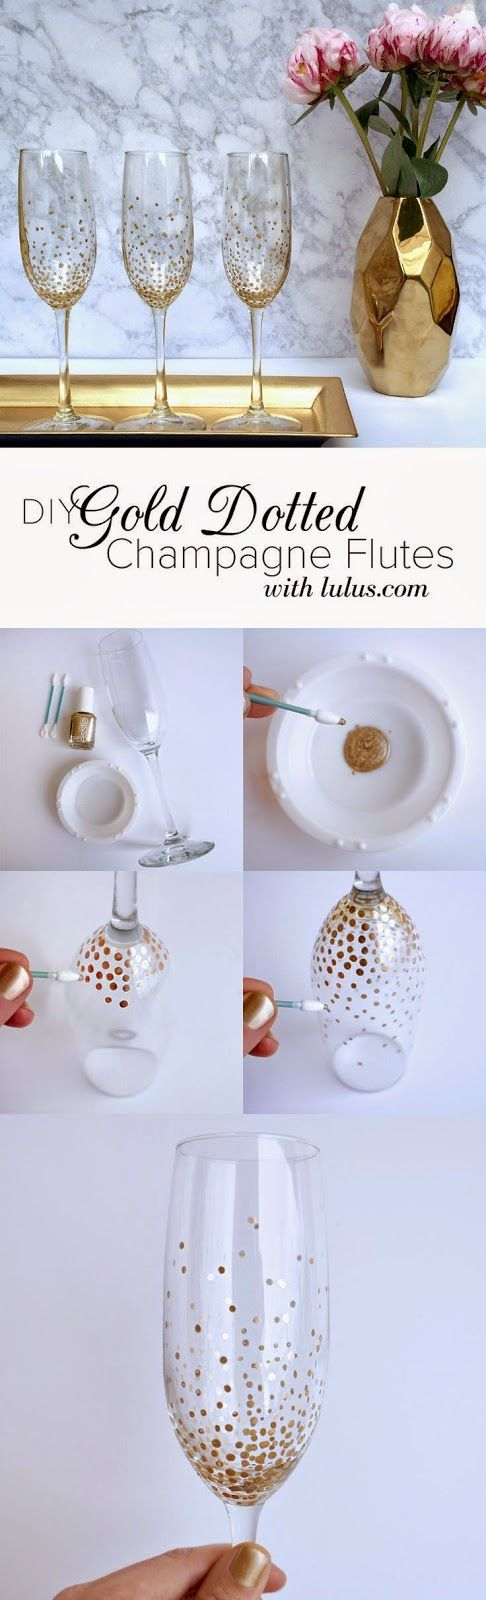 DIY gold dotted wine glasses.